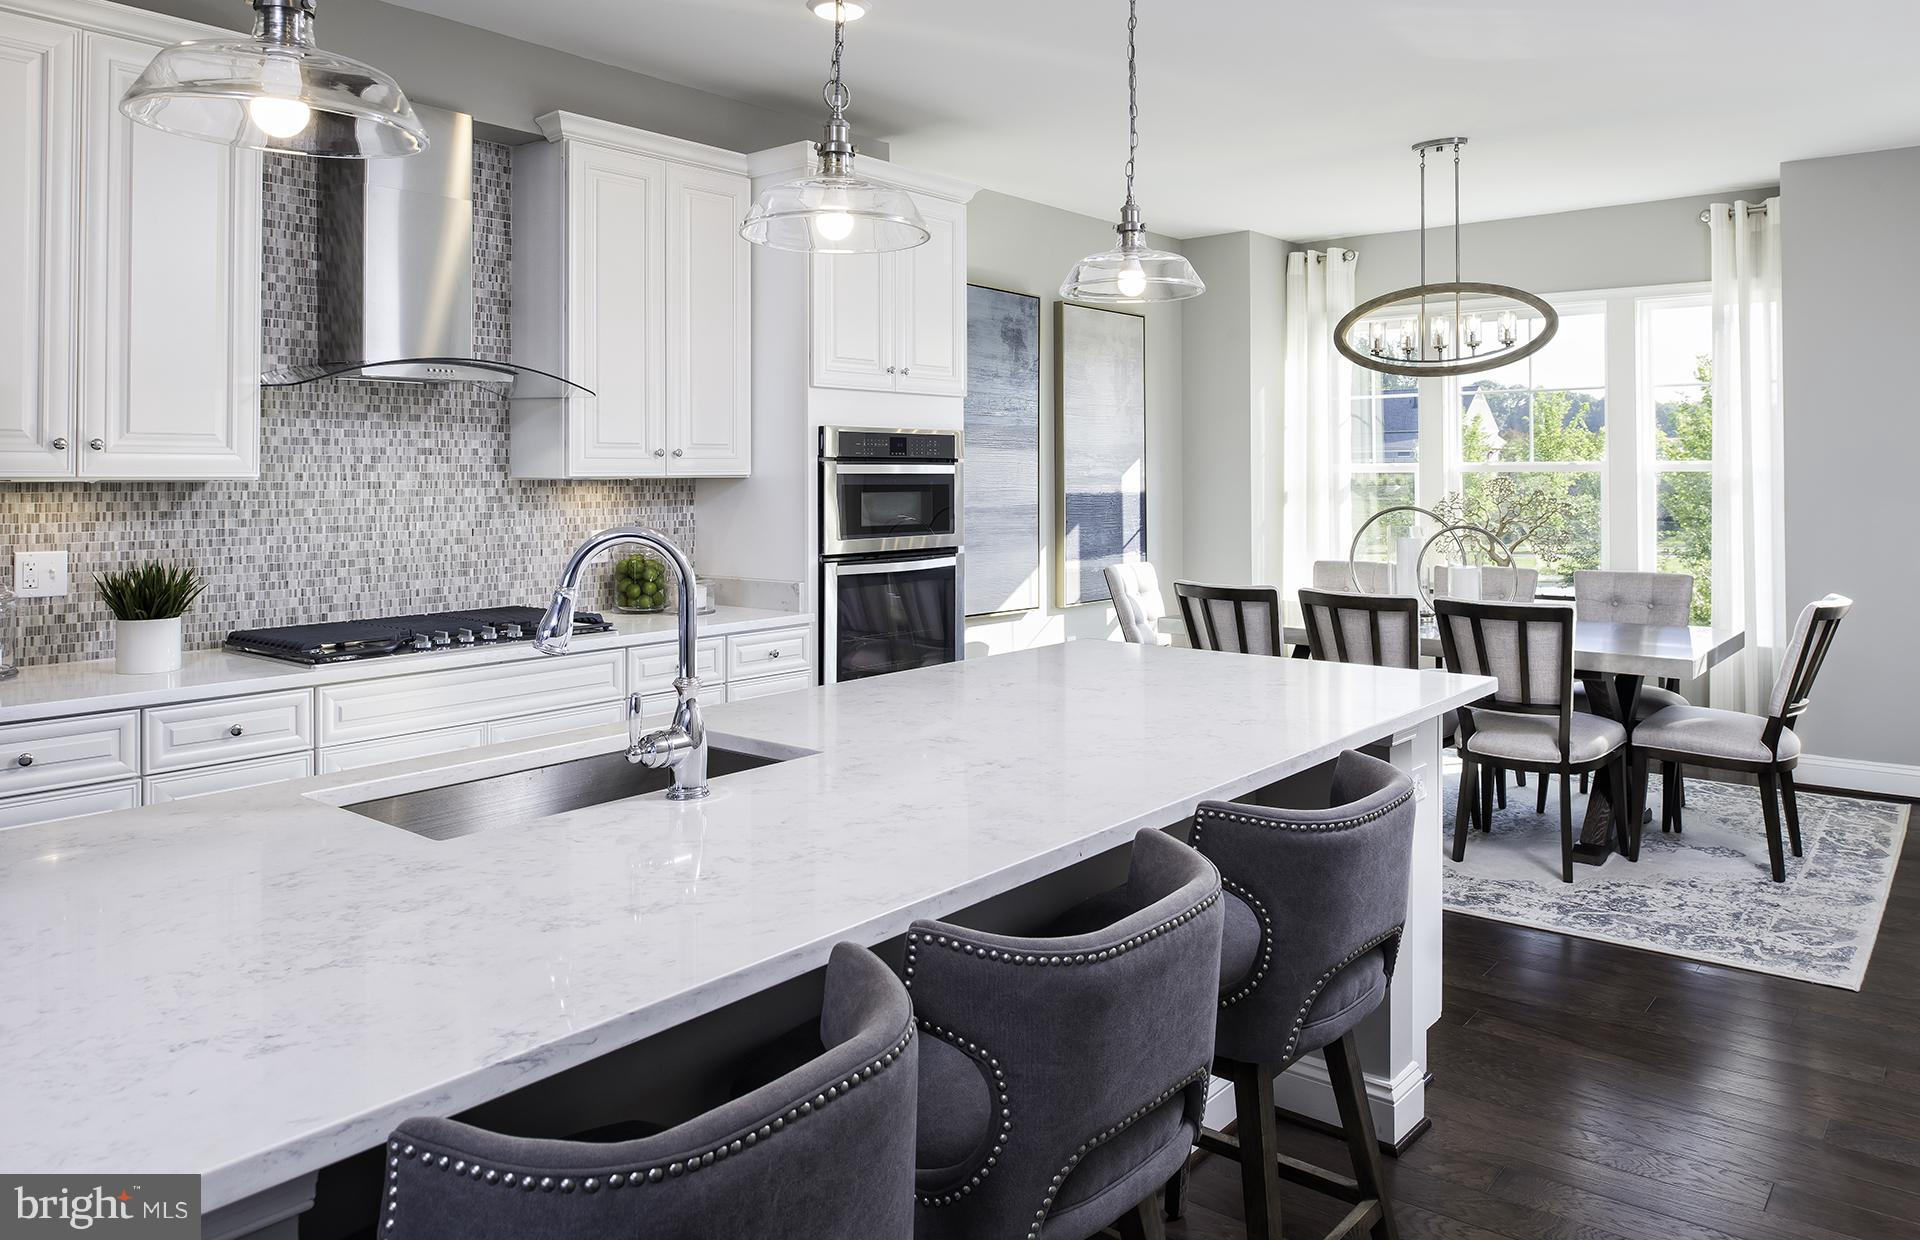 MODEL HOME FOR SALE! This gorgoeus updated Home features a Gourmet Kitchen with Stainless Steel, Whi